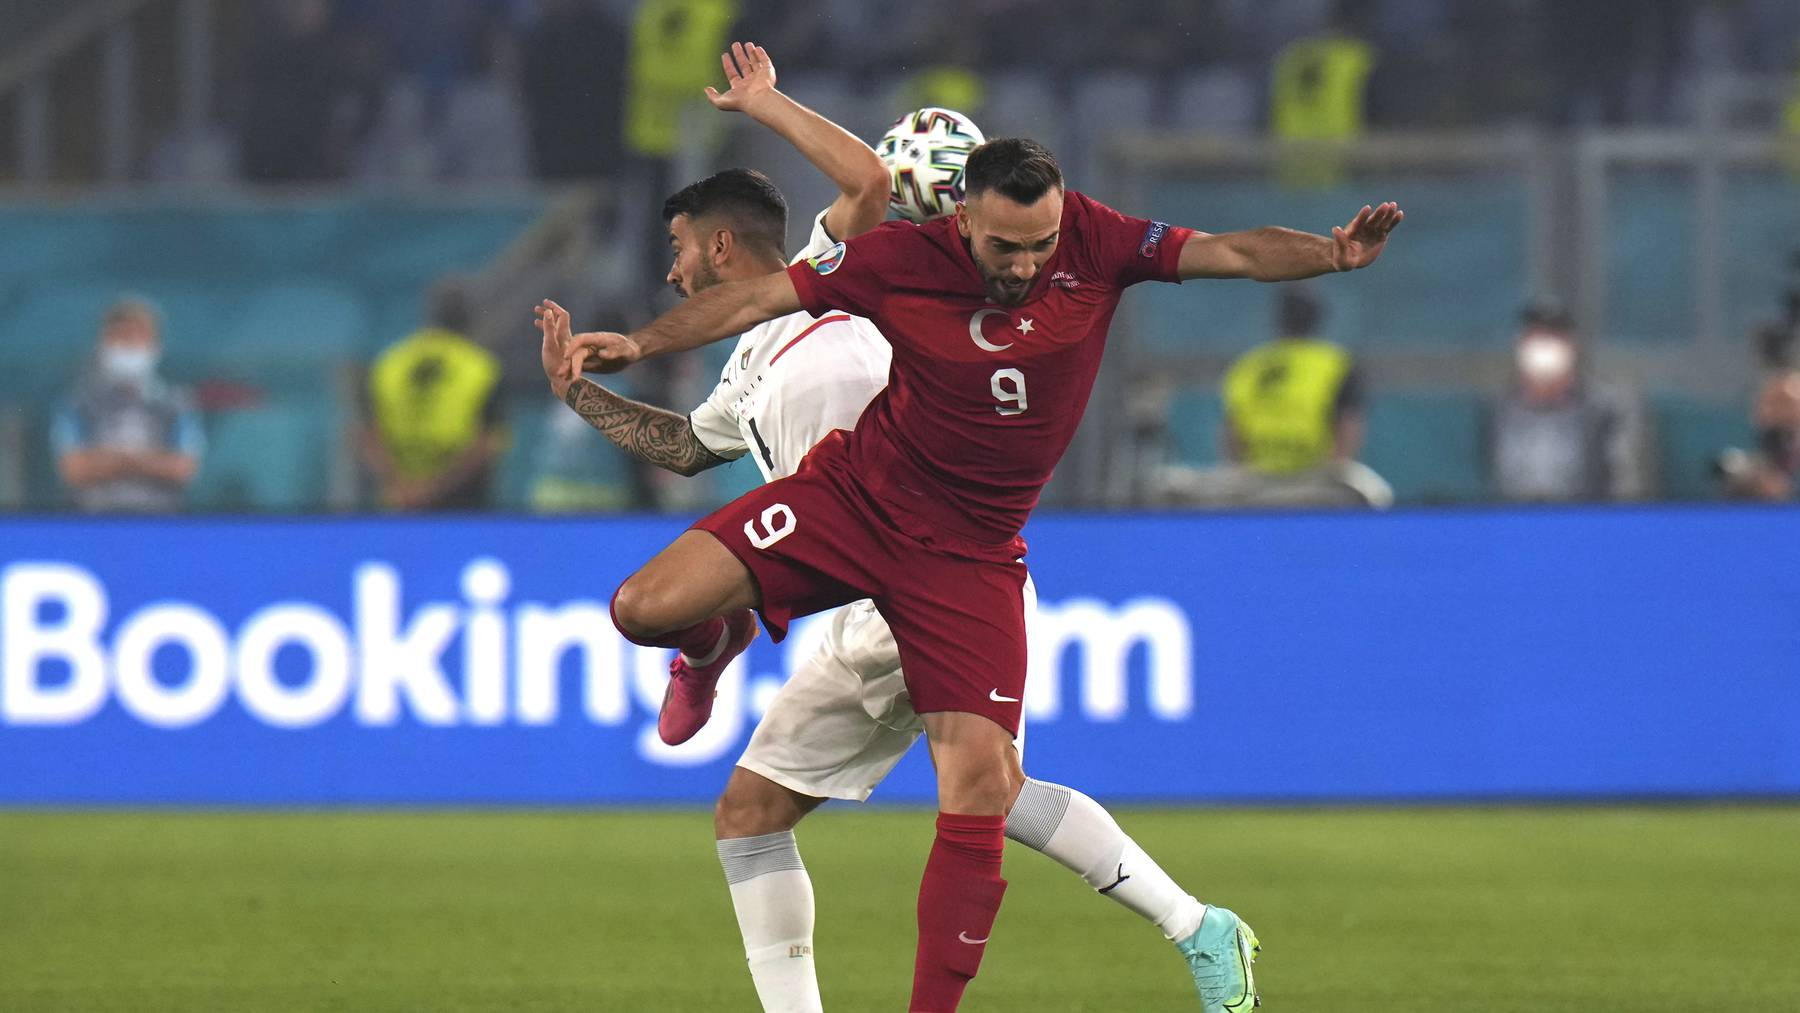 Kenan Karaman of Turkey and Leonardo Spinazzola (L) of Italy in action during the UEFA EURO 2020 group A preliminary round soccer match between Turkey and Italy at the Olympic Stadium in Rome, Italy, 11 June 2021.